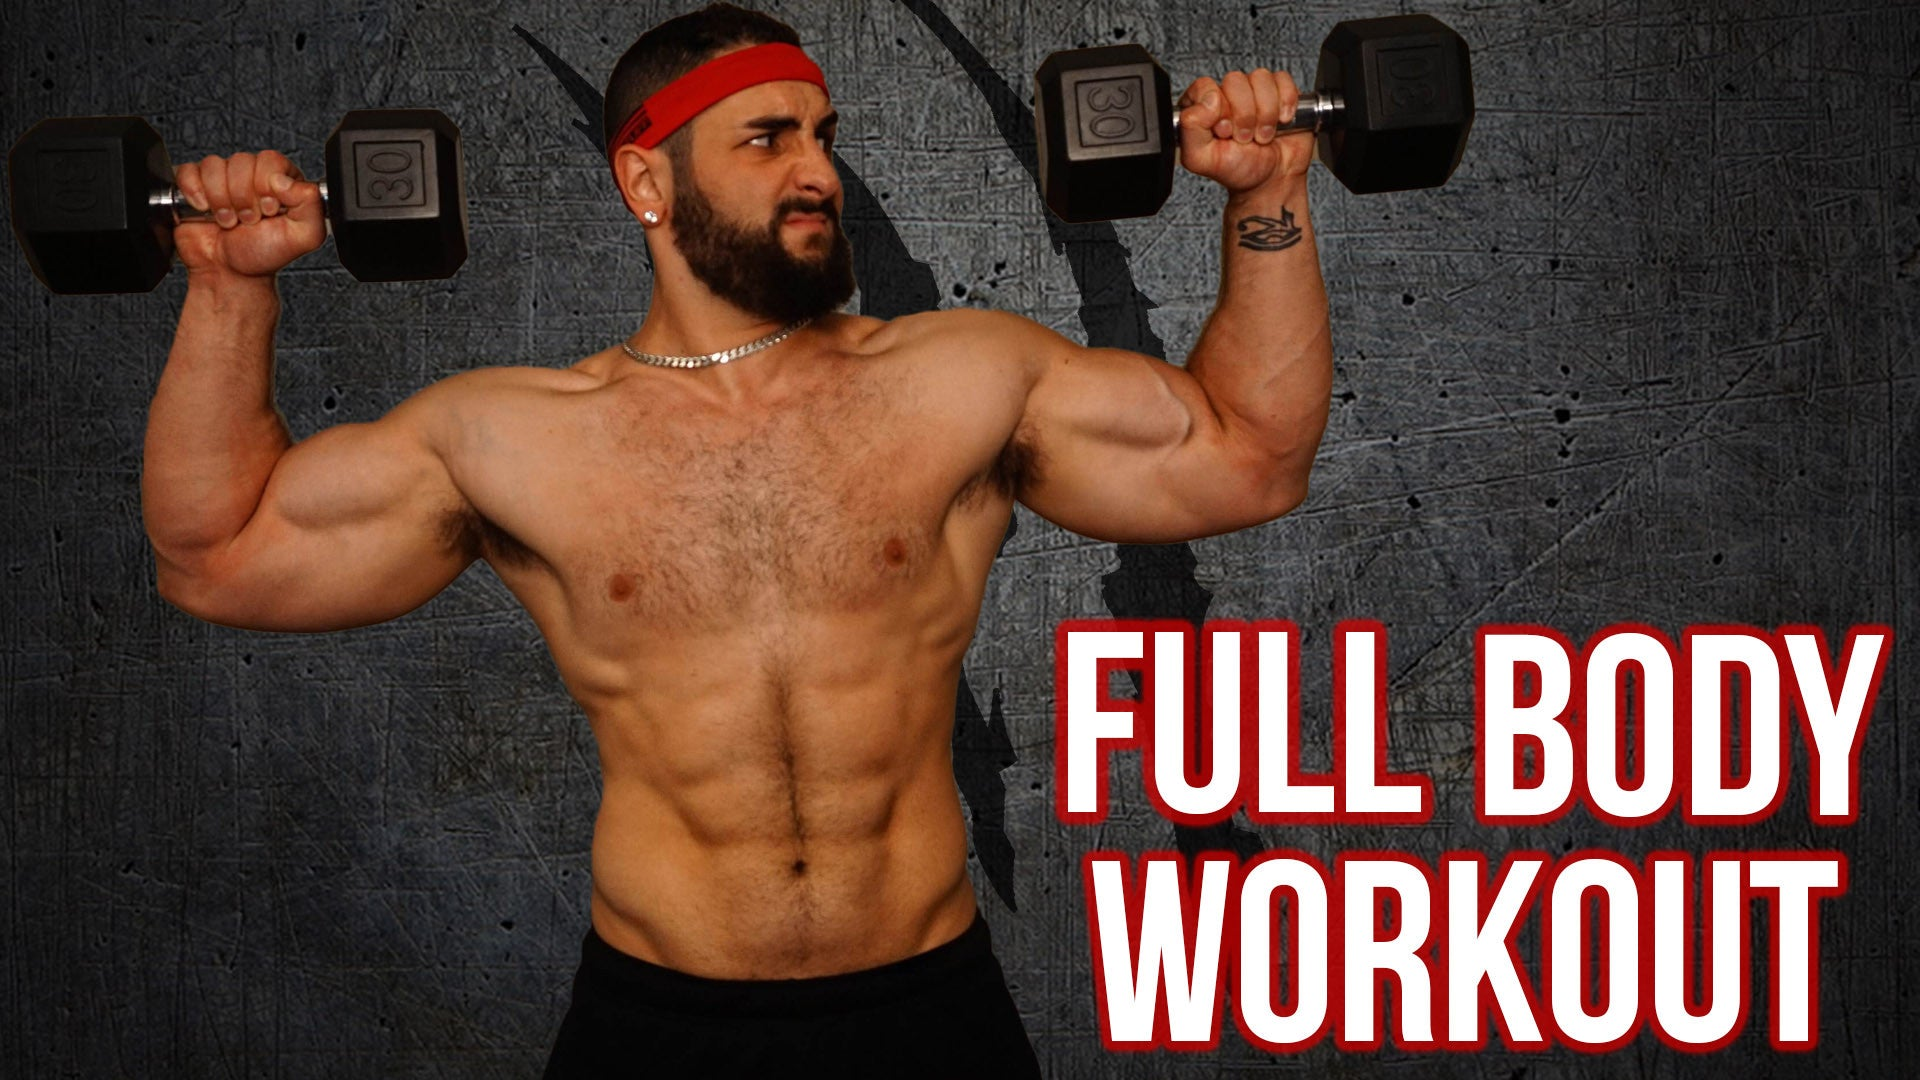 15 Minute Home Full Body Workout With Dumbbells Killer Total Muscle Building